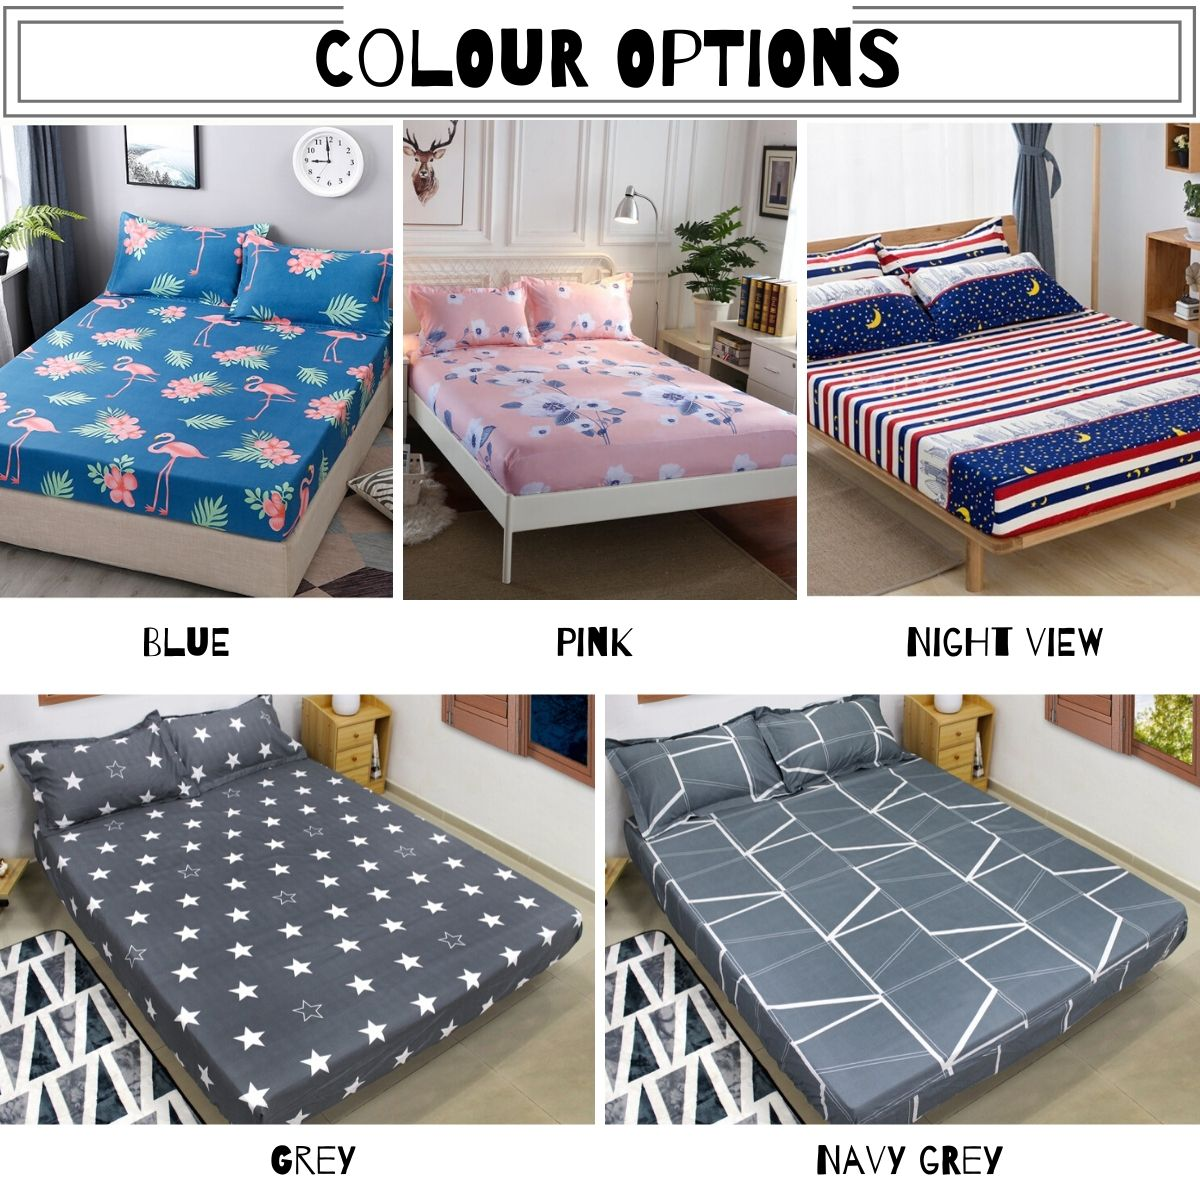 3 In 1 Creative Design Queen Size Fitted Cotton Bed Sheet